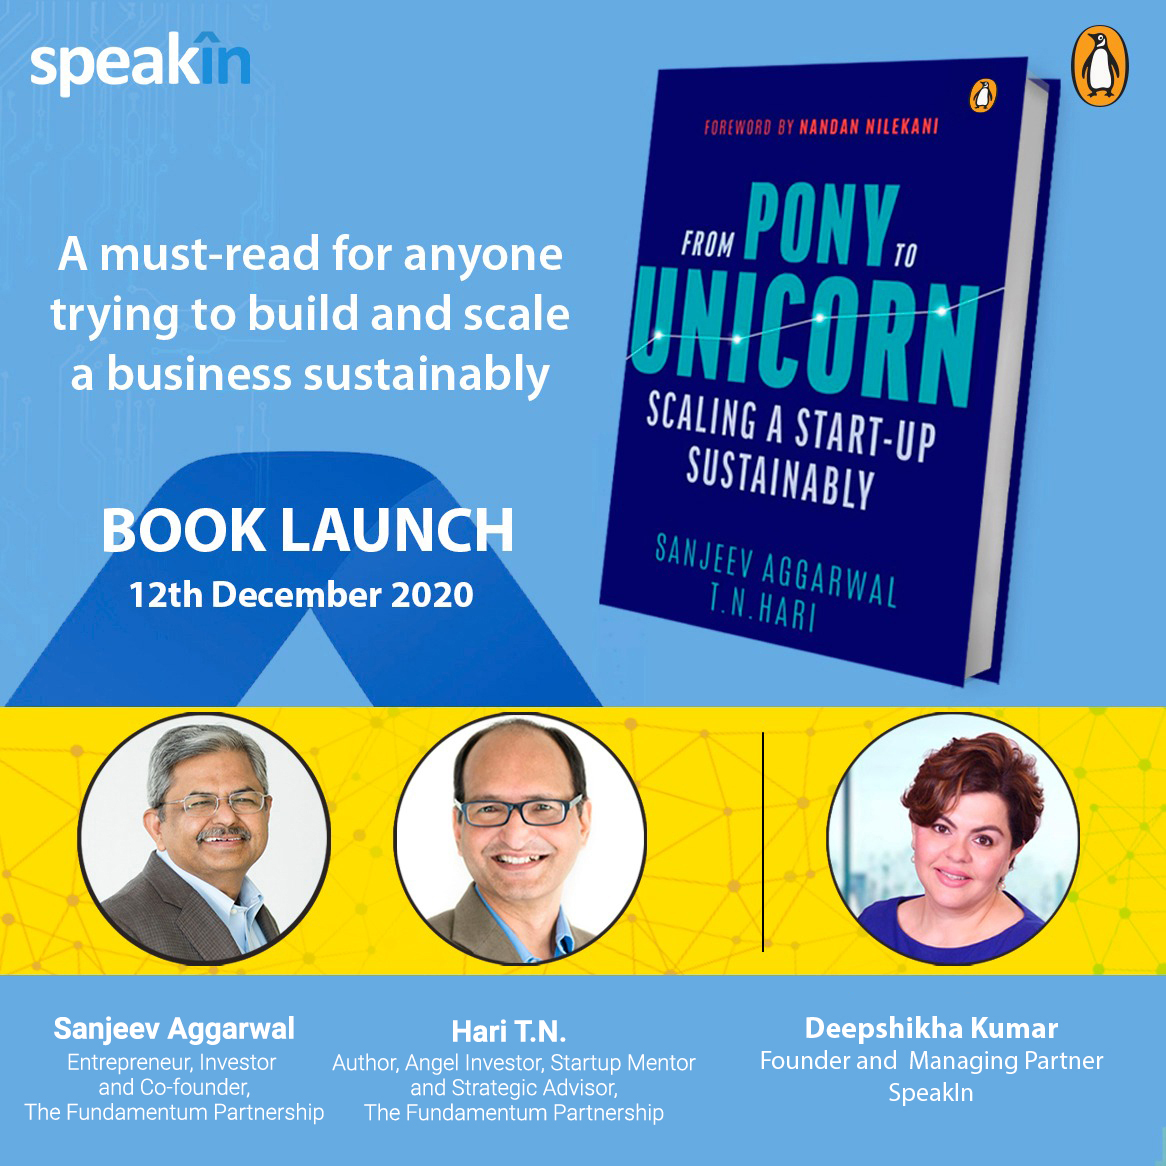 From Pony to Unicorn - Book Launch with SpeakIn